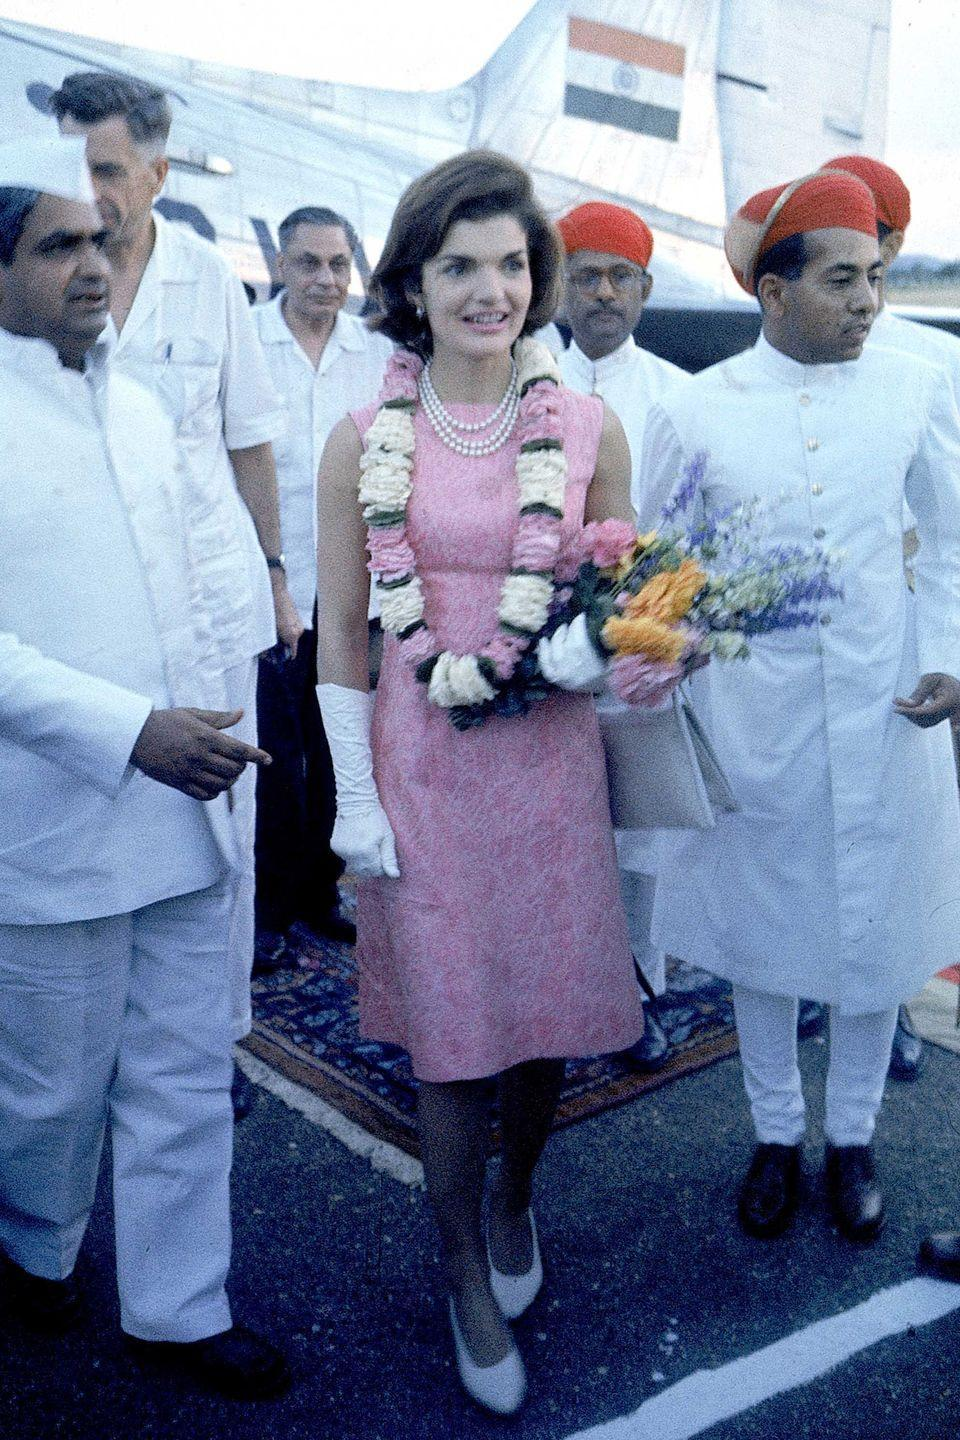 <p>While her pink Chanel suit will go down in infamy, this little shift was worn during happier times. White gloves, pearls and pumps finish the idea.</p>